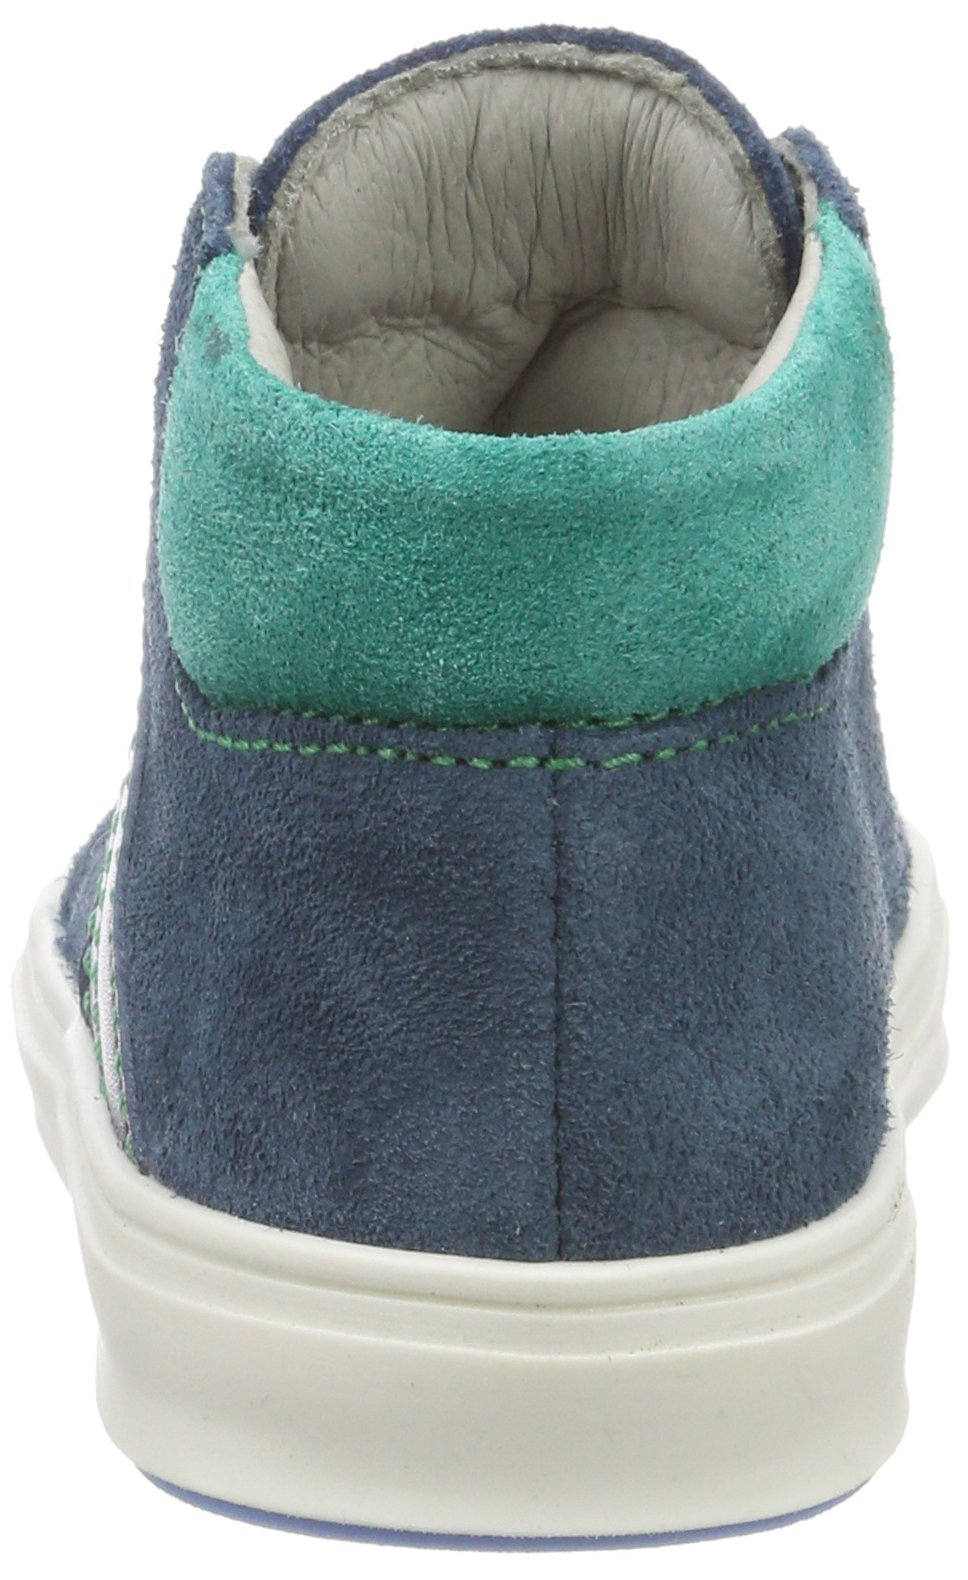 Richter Kinderschuhe Boys' Jimmy Derbys, Blue (Pacific/Menta 6701), 7.5 UK by Richter Kinderschuhe (Image #2)